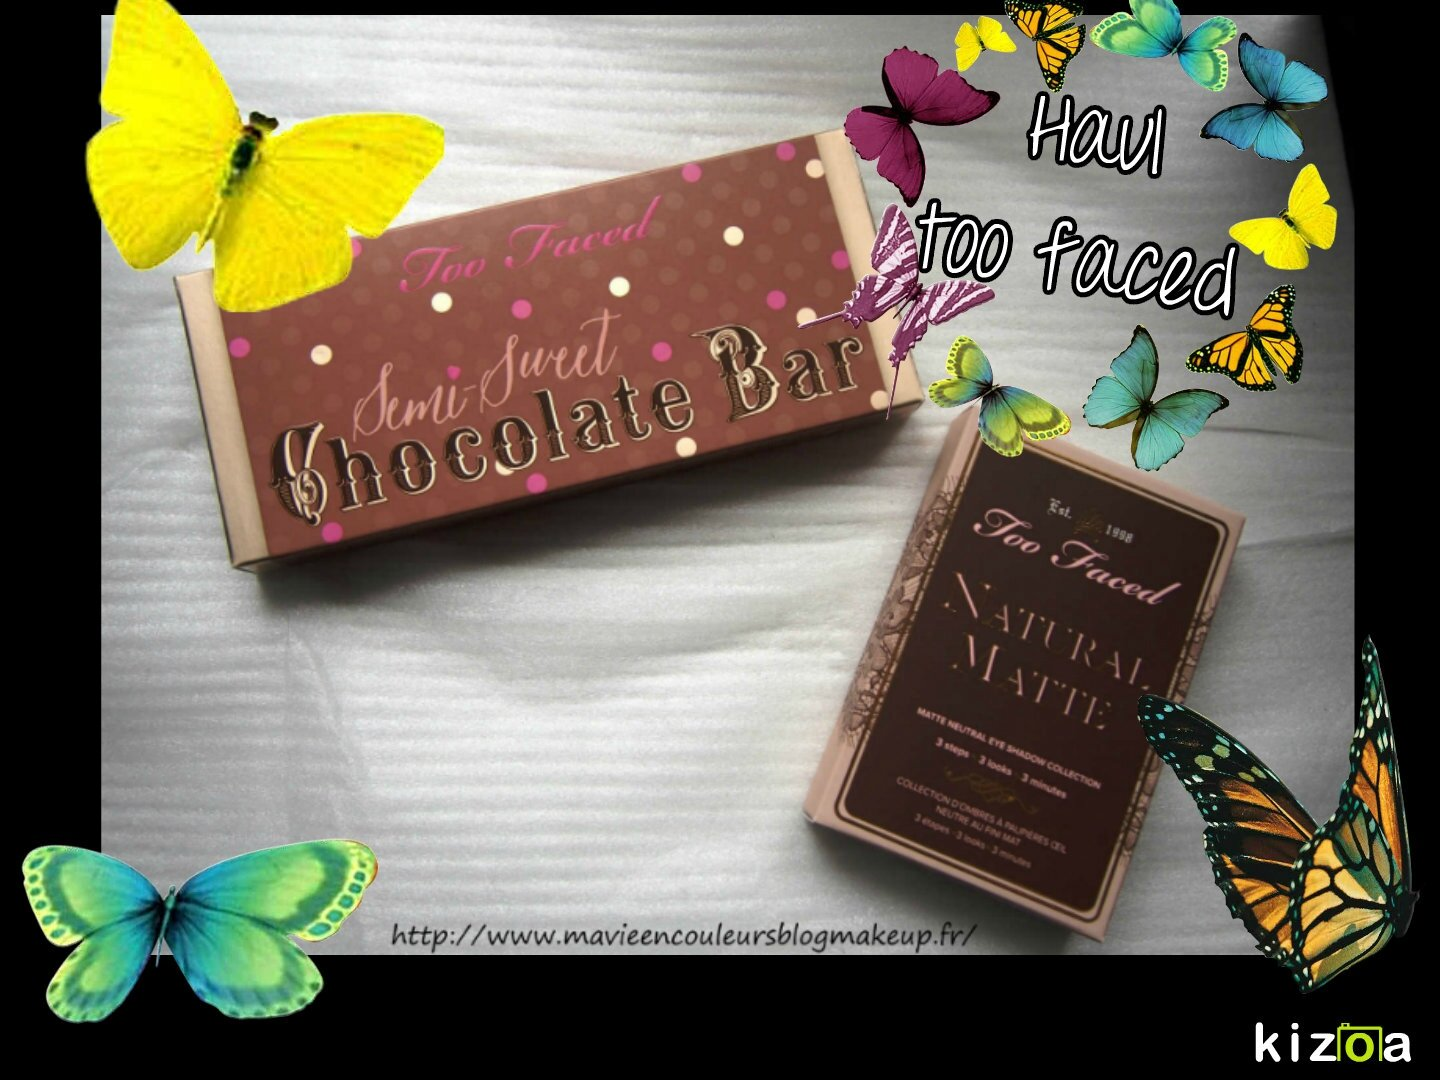 Too faced chocolate bar semi sweet & natural matte.